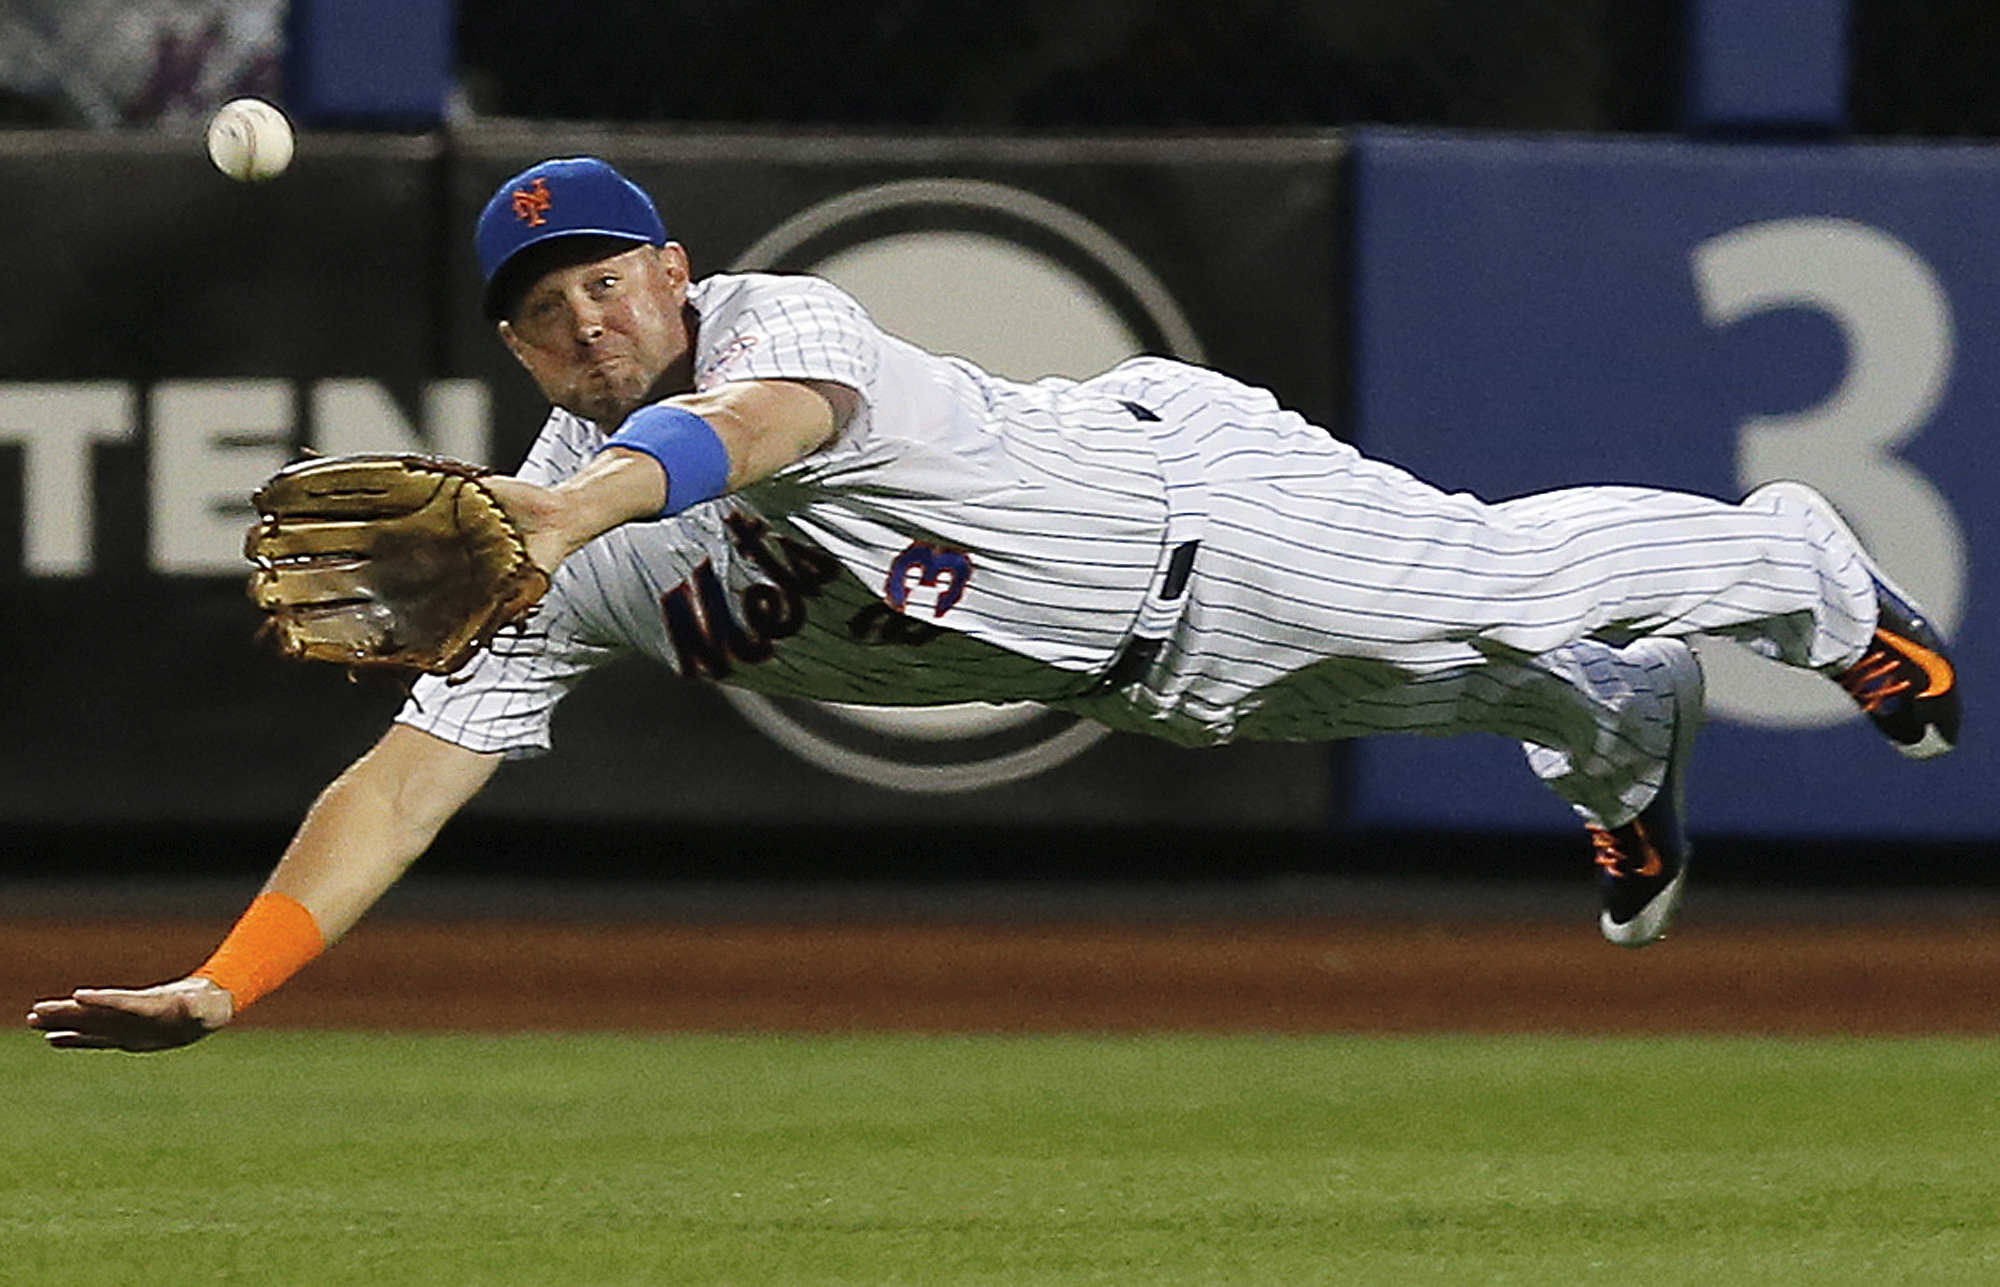 FILE - In this Sept. 16, 2015, file photo, New York Mets right fielder Michael Cuddyer makes a leaping catch of a line drive hit by Miami Marlins' Martin Prado during the first inning of a baseball game in New York. Cuddyer is ready to retire after playin